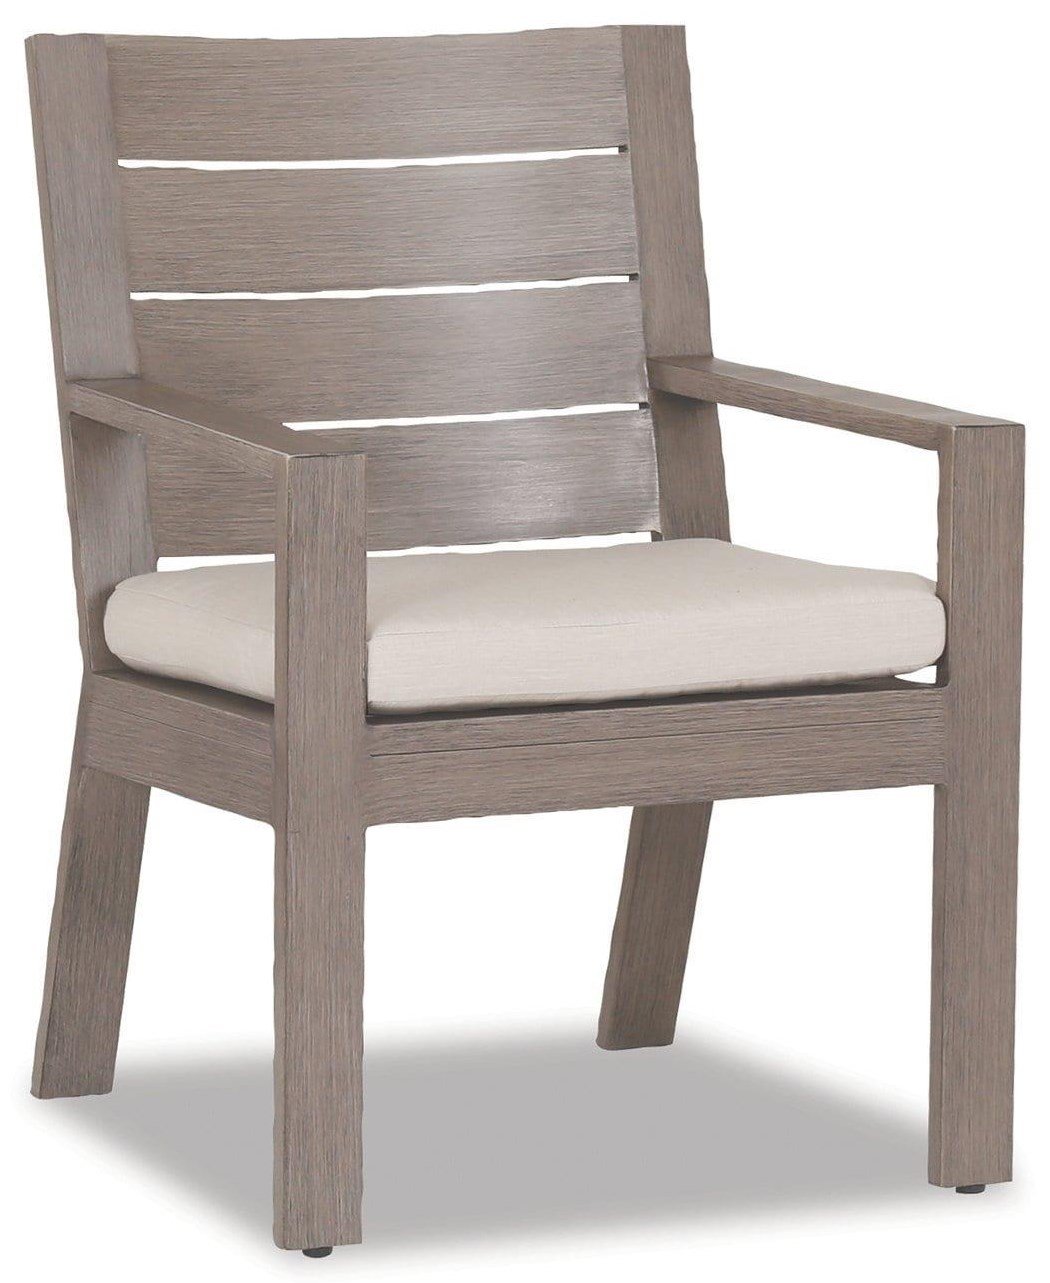 Laguna Outdoor Dining Chair by Sunset West at Belfort Furniture